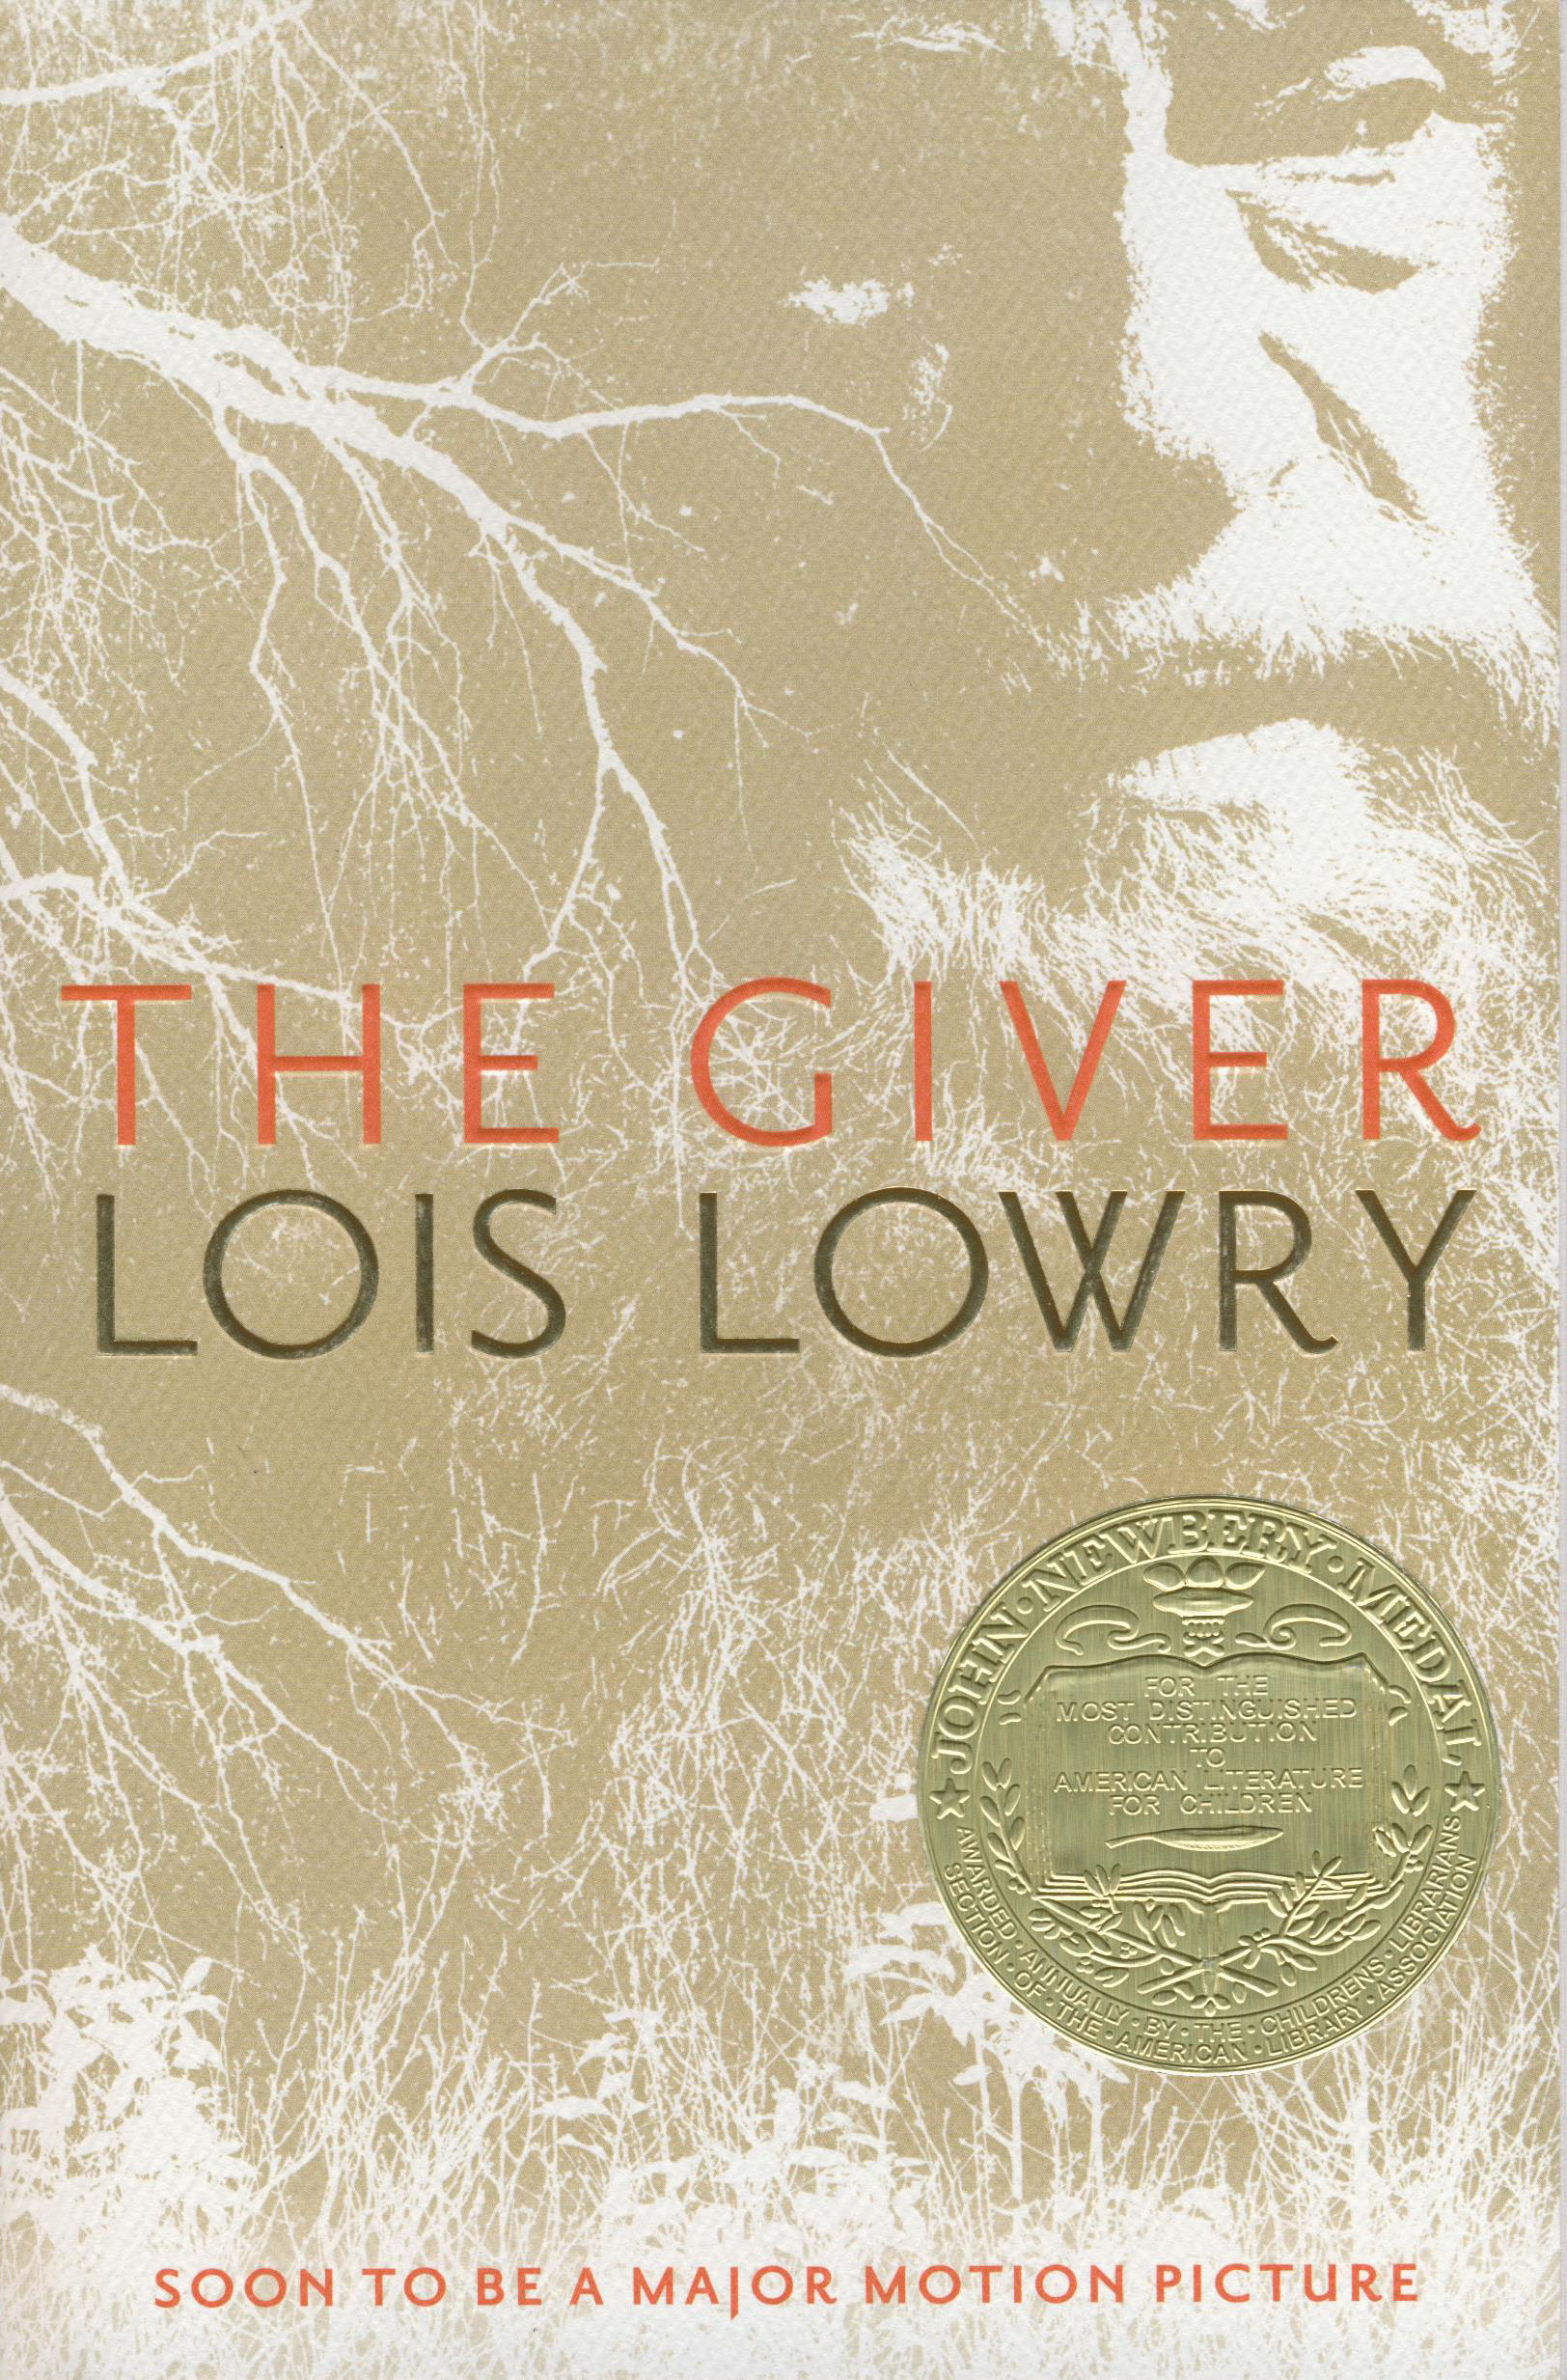 The Giver Paperback Book 760l English Teacher S Discovery